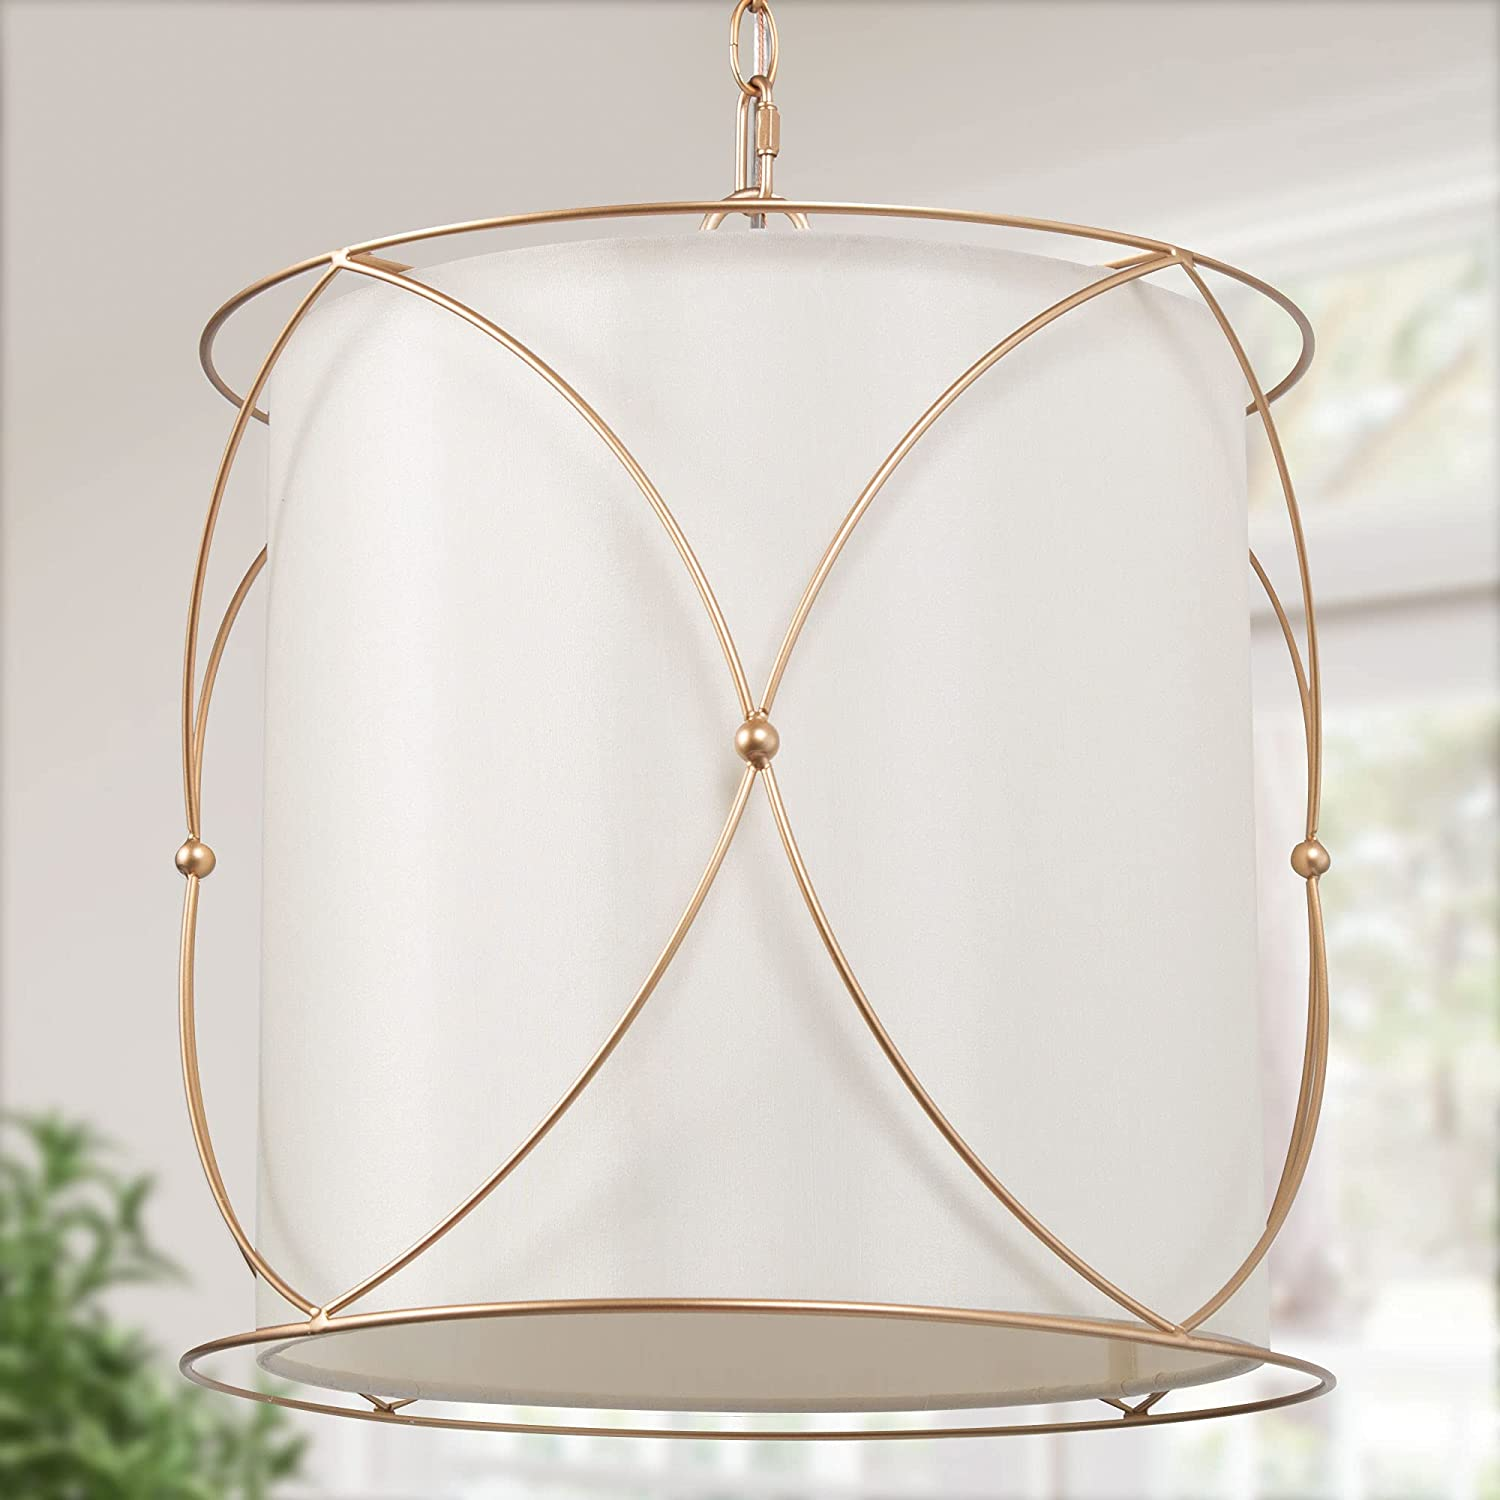 Gold Drum Chandelier Pendant Lighting Fabric White Sh 67% OFF of fixed price with Large special price !!